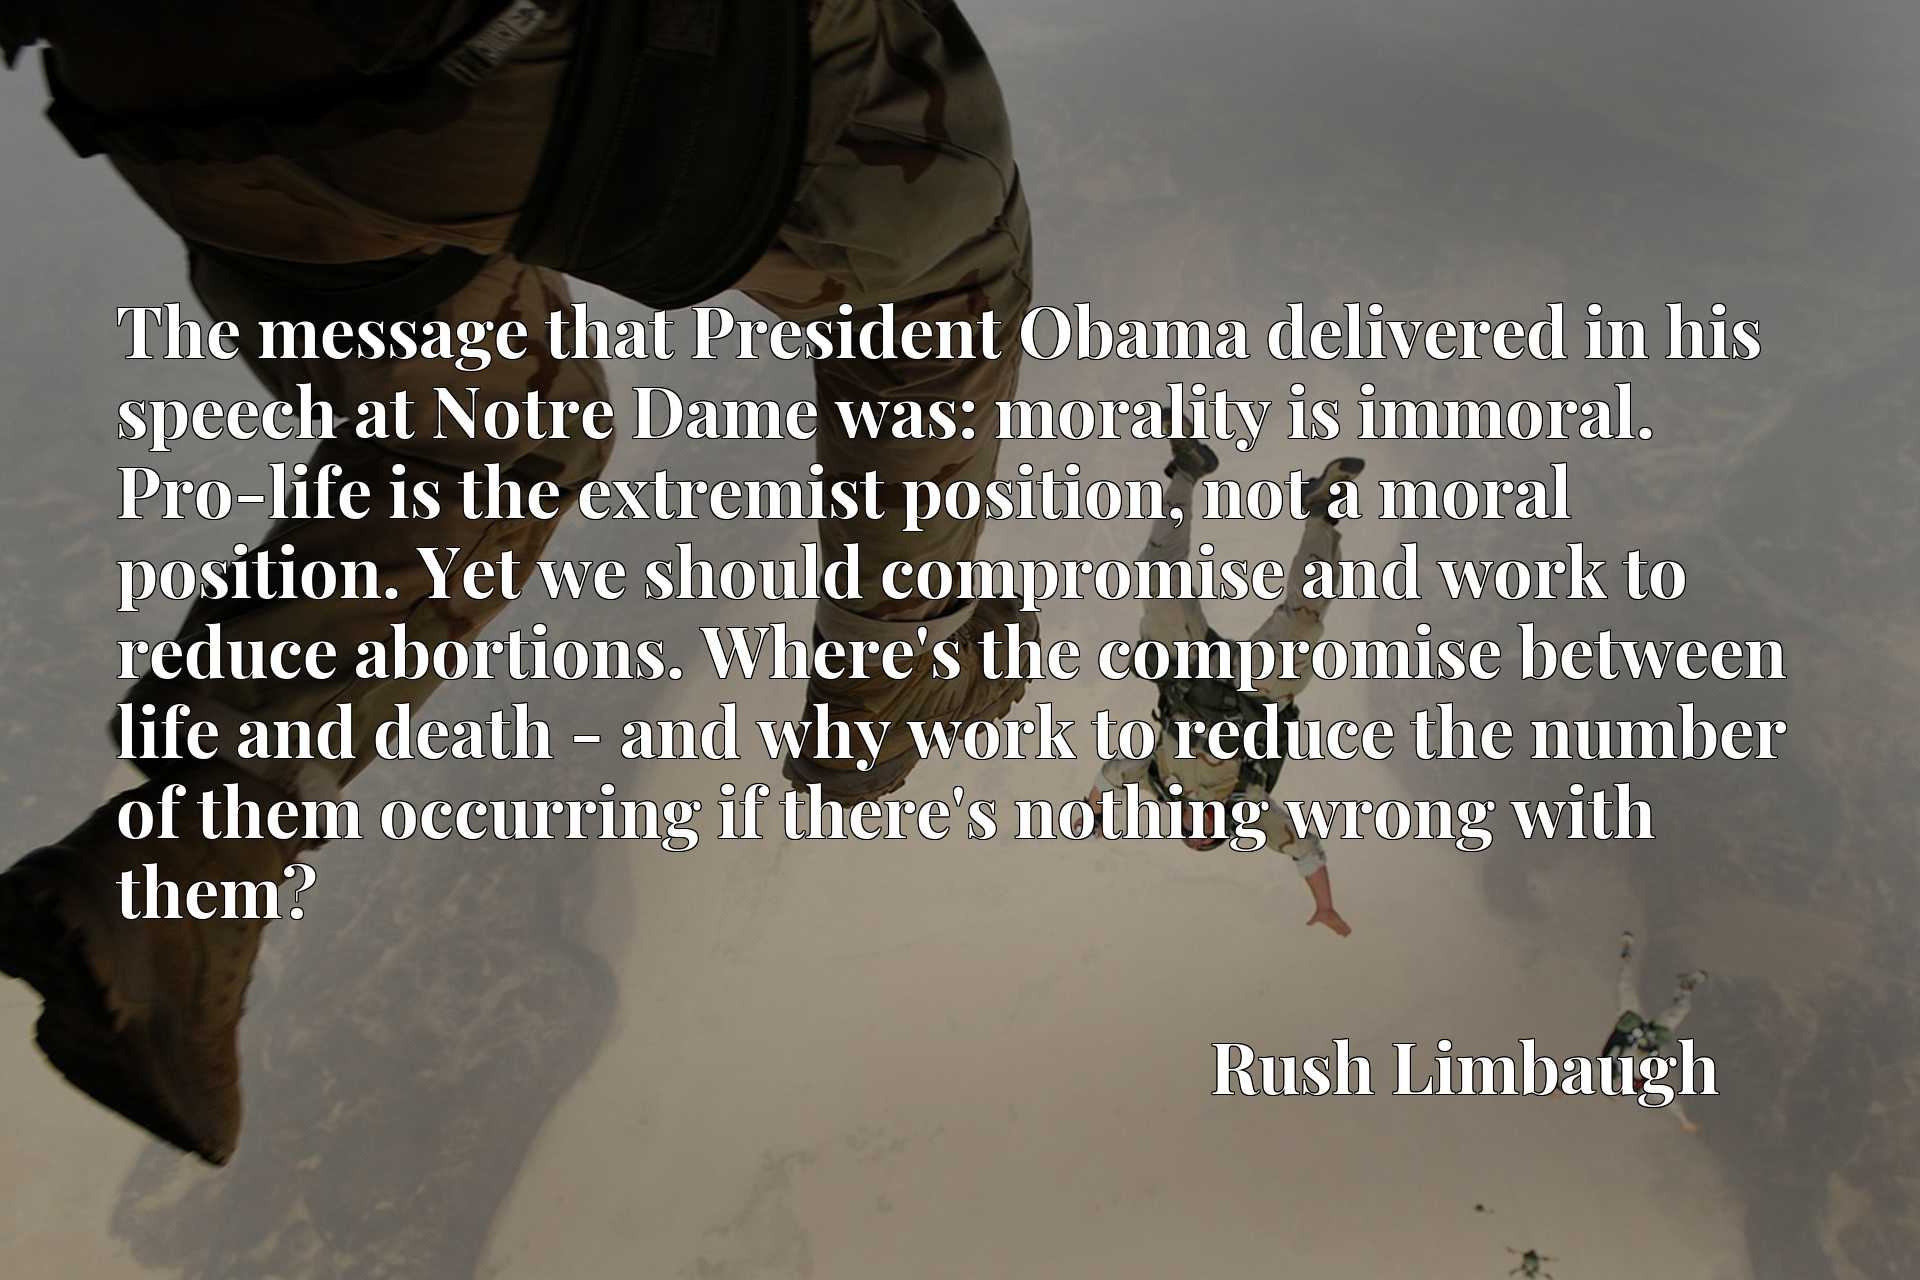 The message that President Obama delivered in his speech at Notre Dame was: morality is immoral. Pro-life is the extremist position, not a moral position. Yet we should compromise and work to reduce abortions. Where's the compromise between life and death - and why work to reduce the number of them occurring if there's nothing wrong with them?